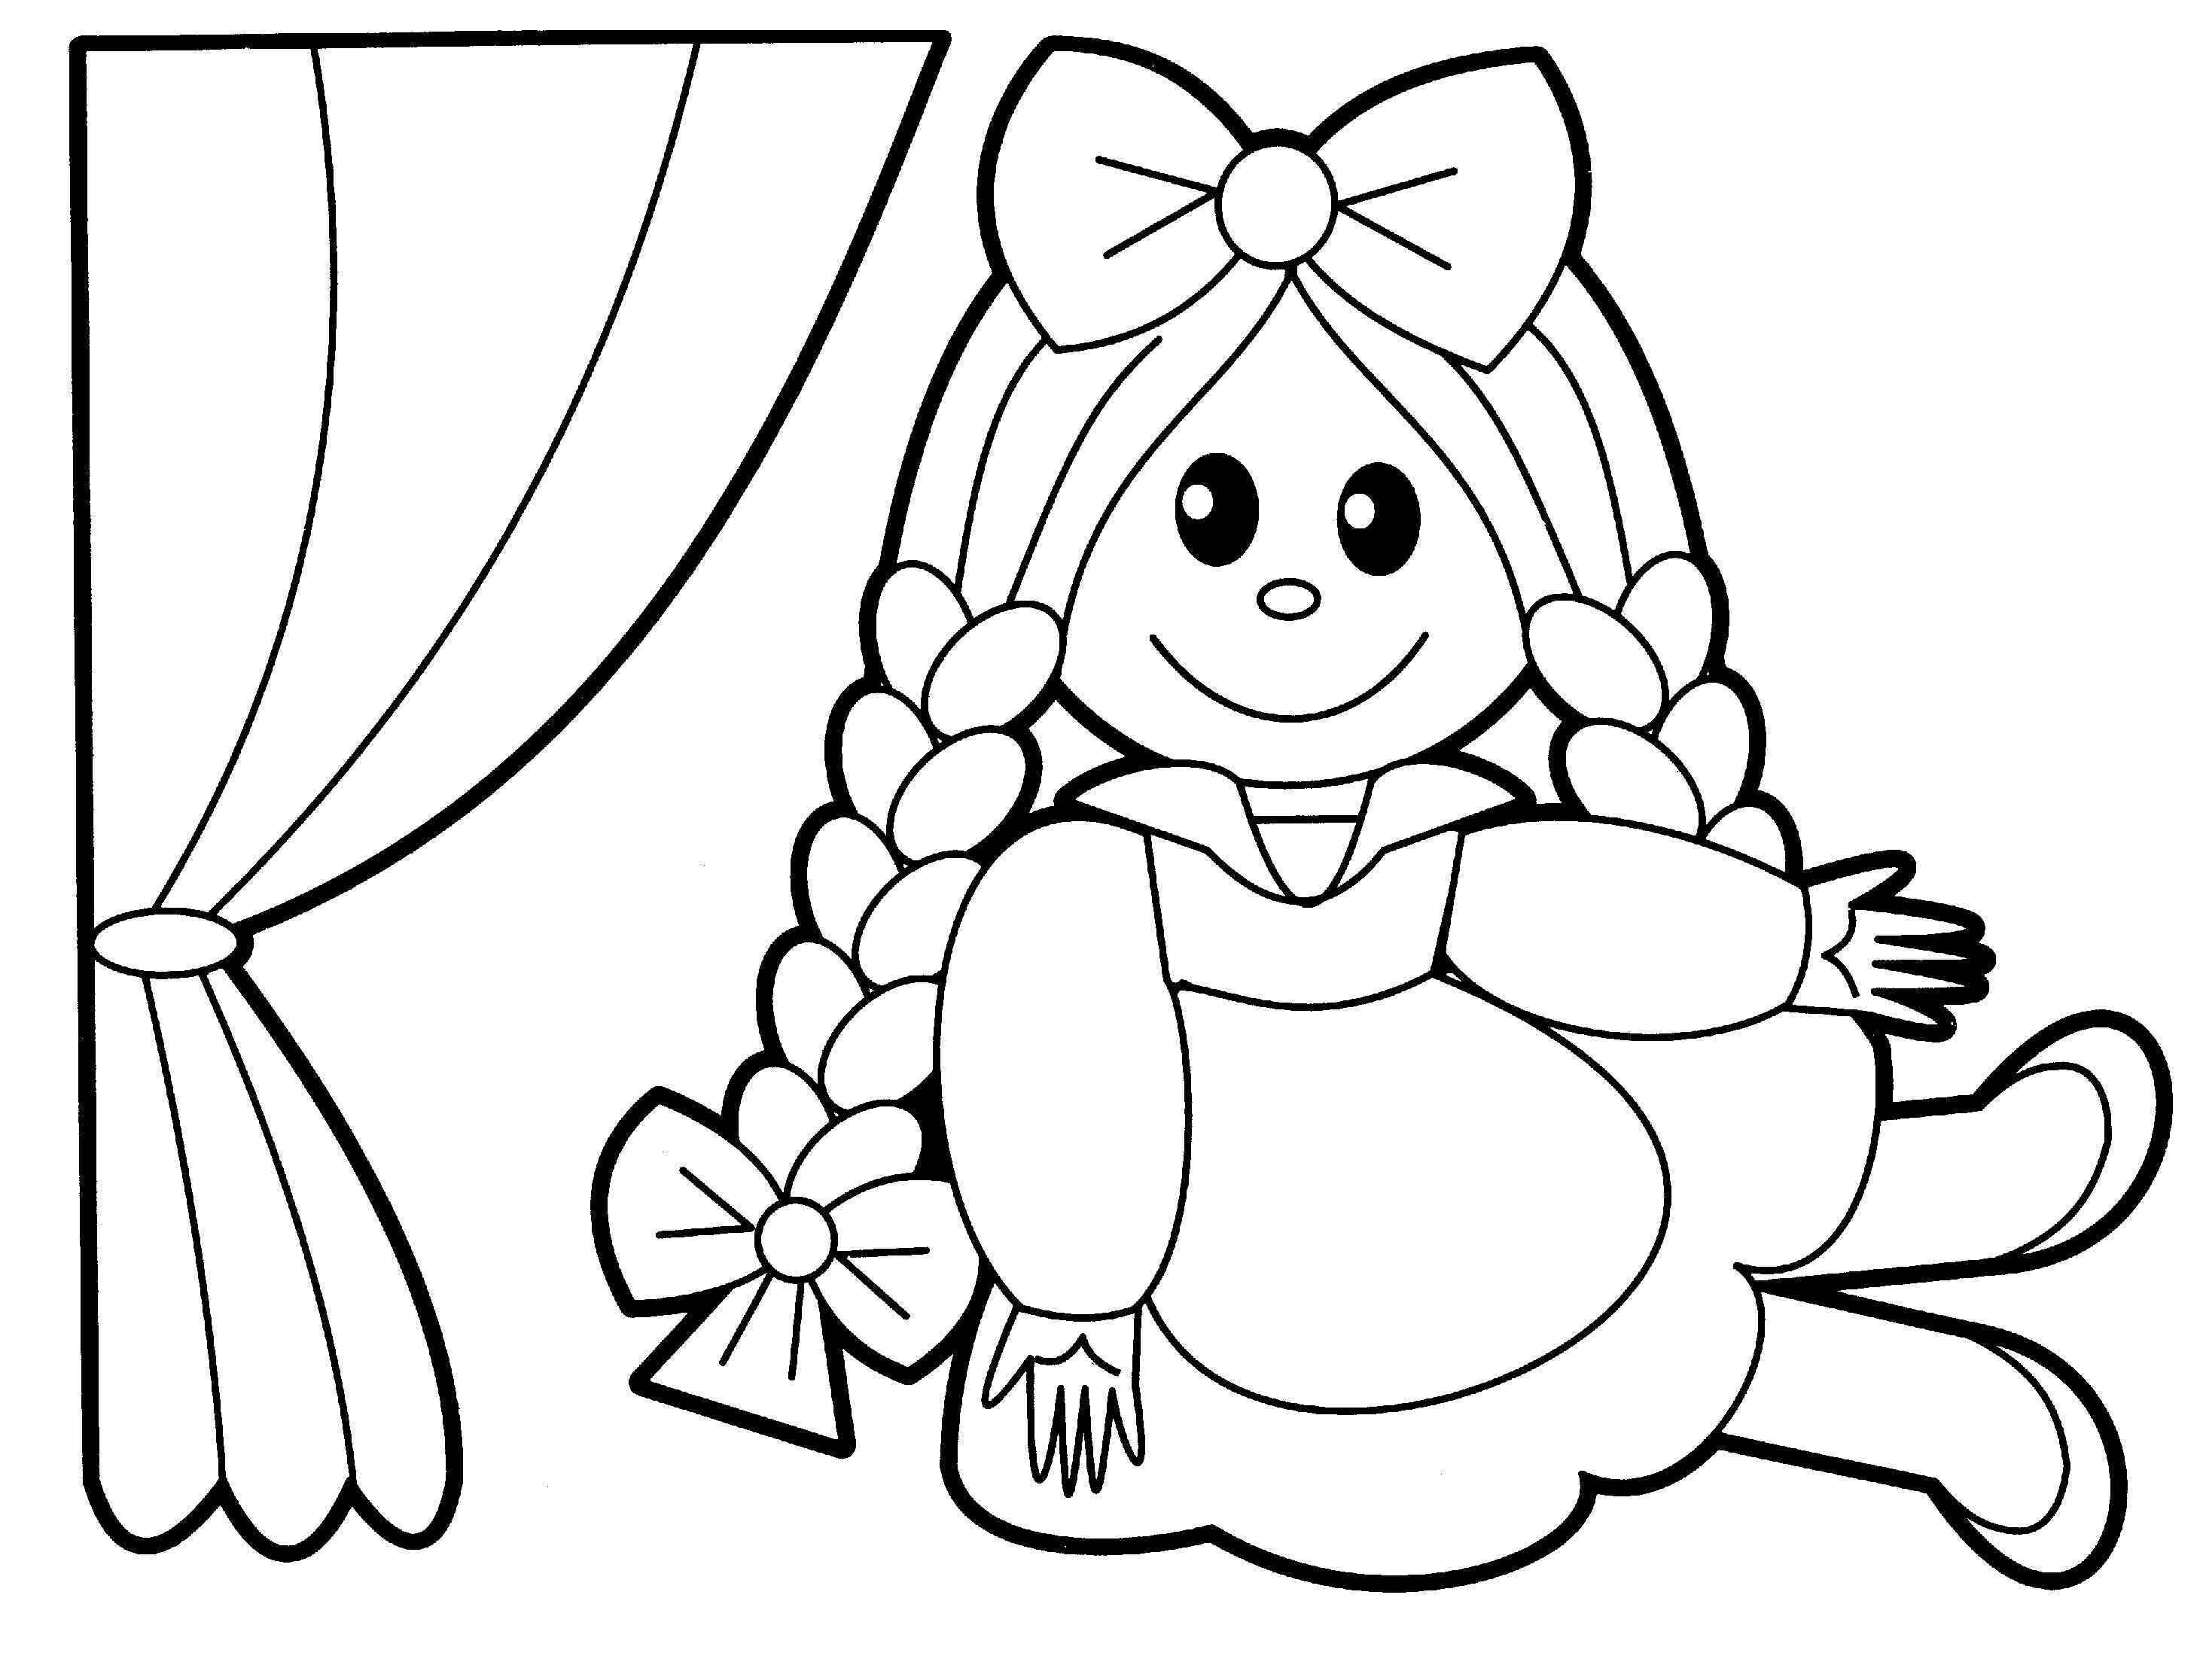 coloring pages dolls - photo#7